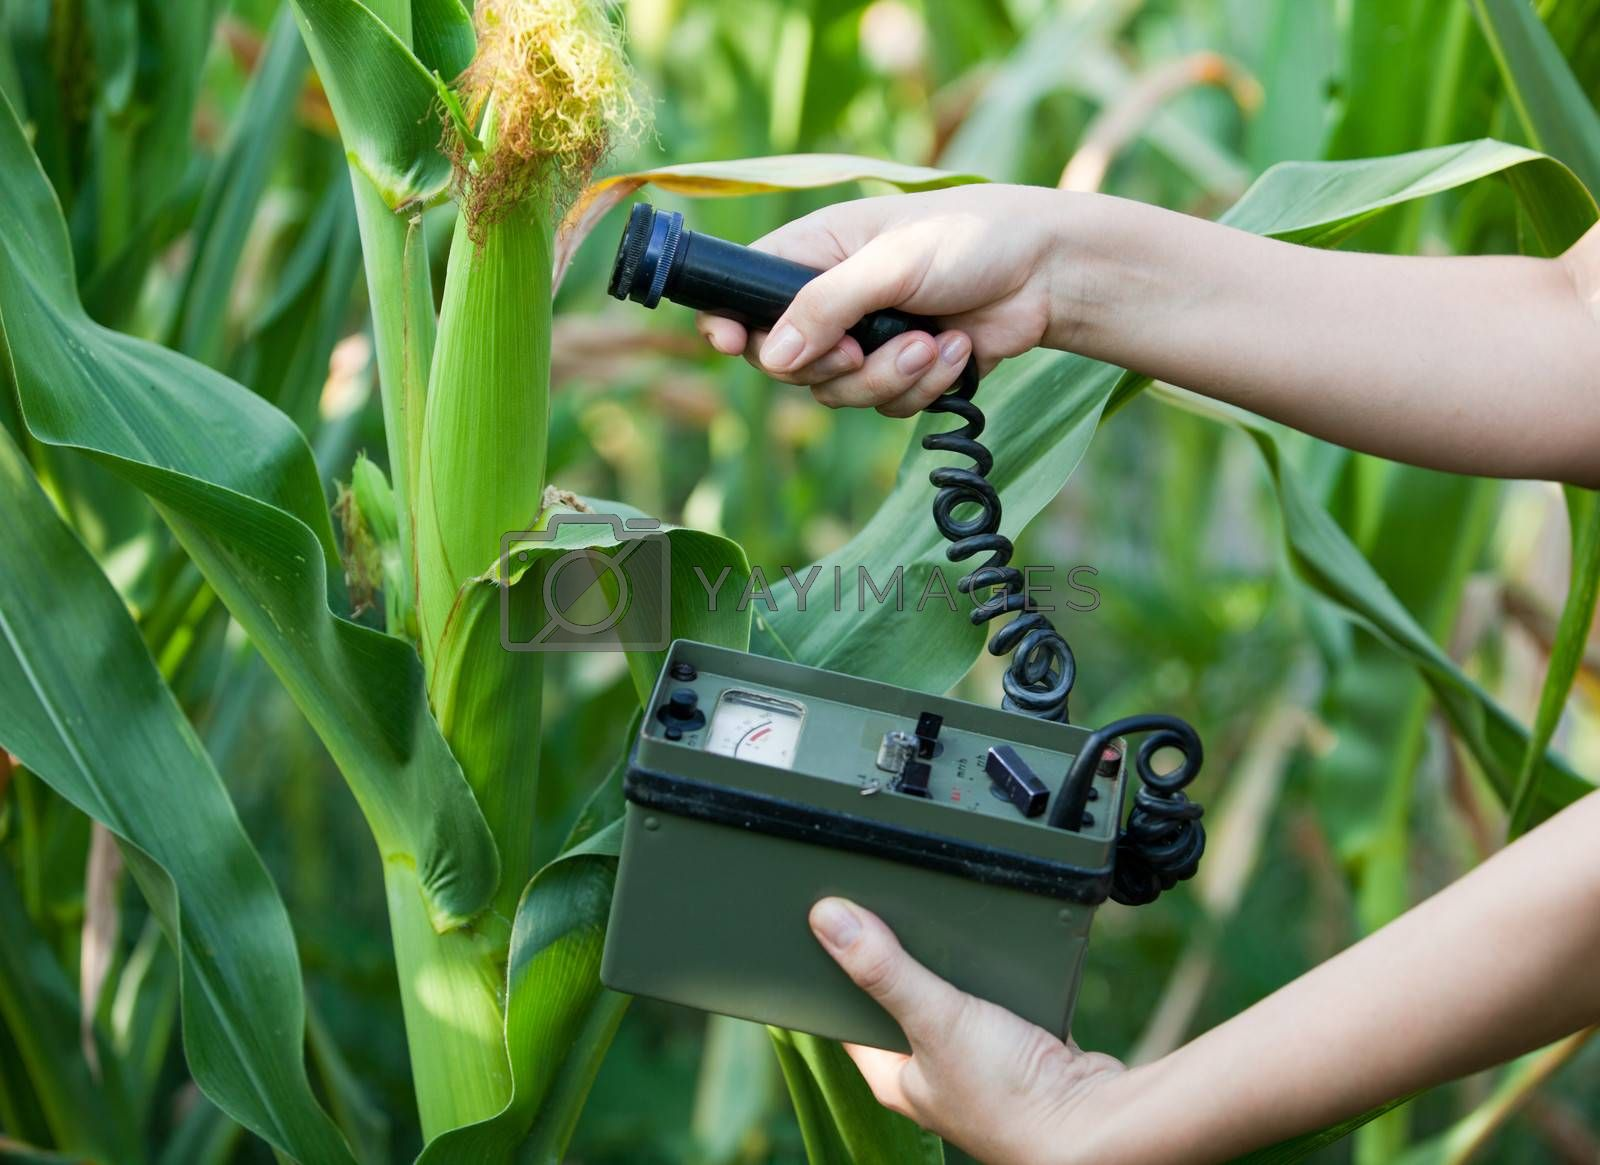 Measuring radiation levels of maize